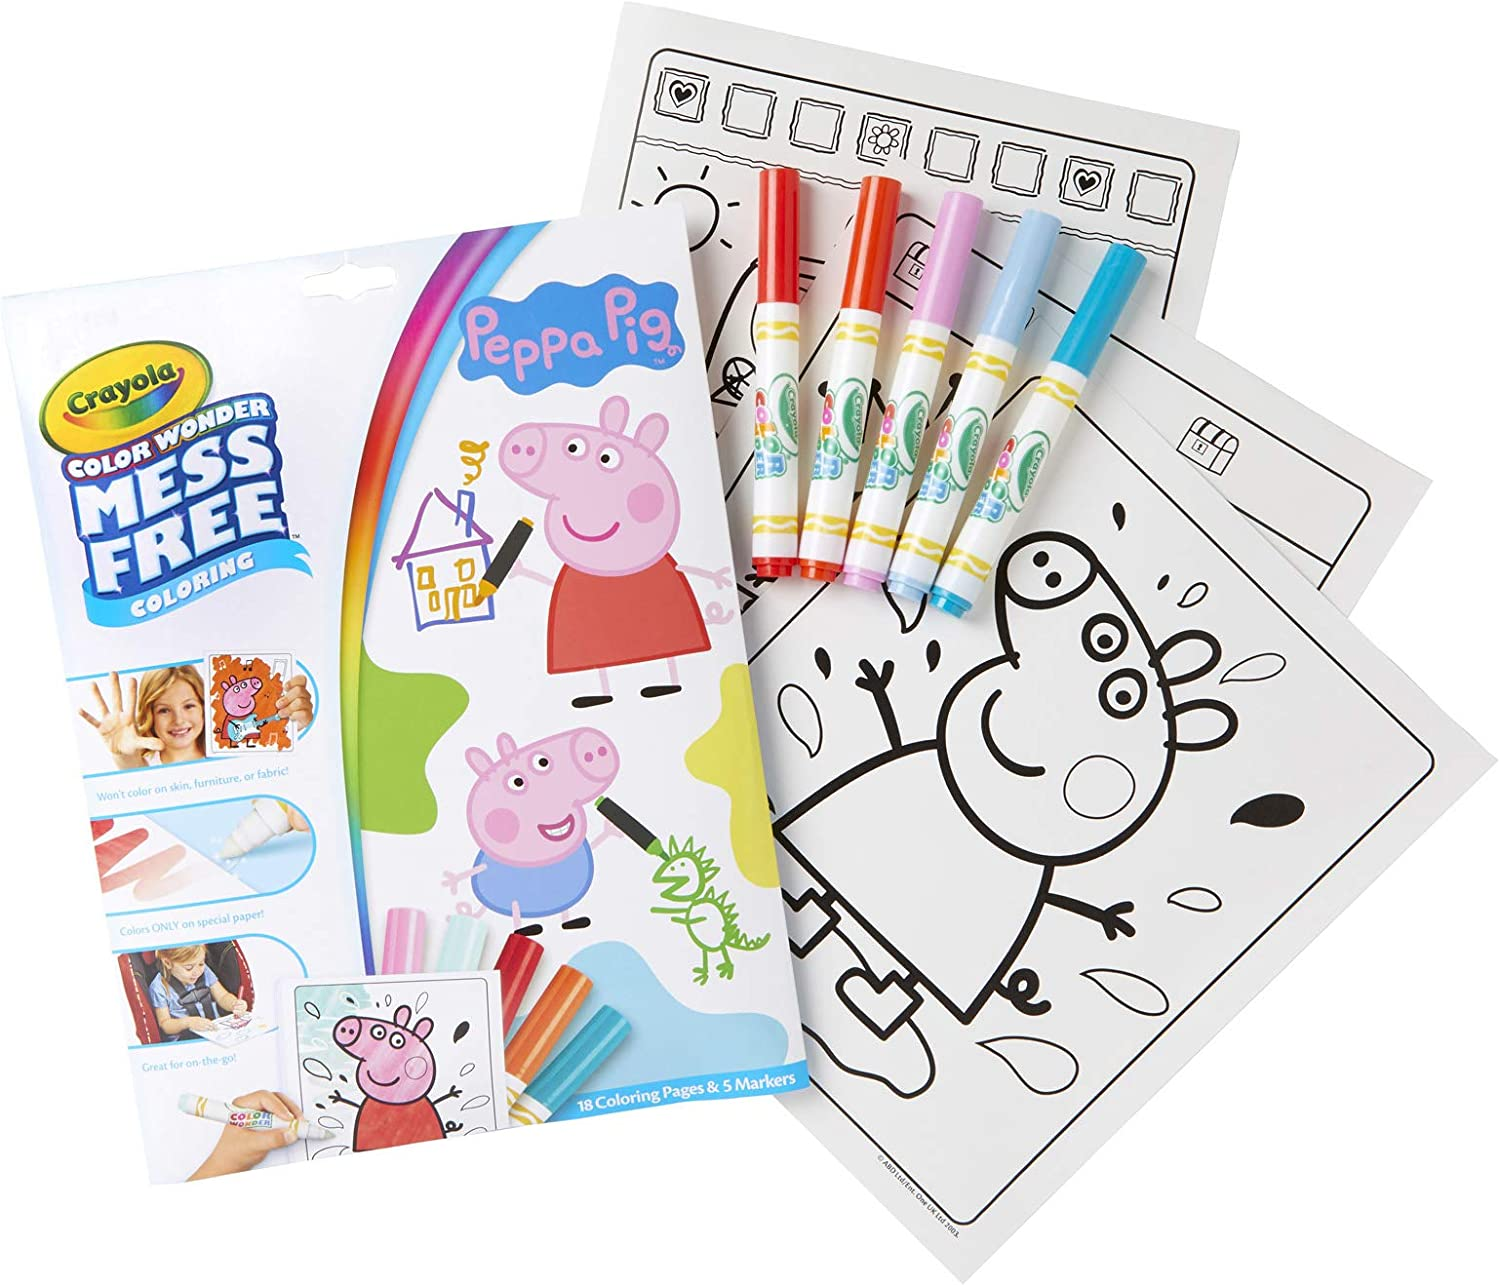 Amazon.com: Crayola 75-7000 Color Wonder Mess Free Drawing, Peppa ...